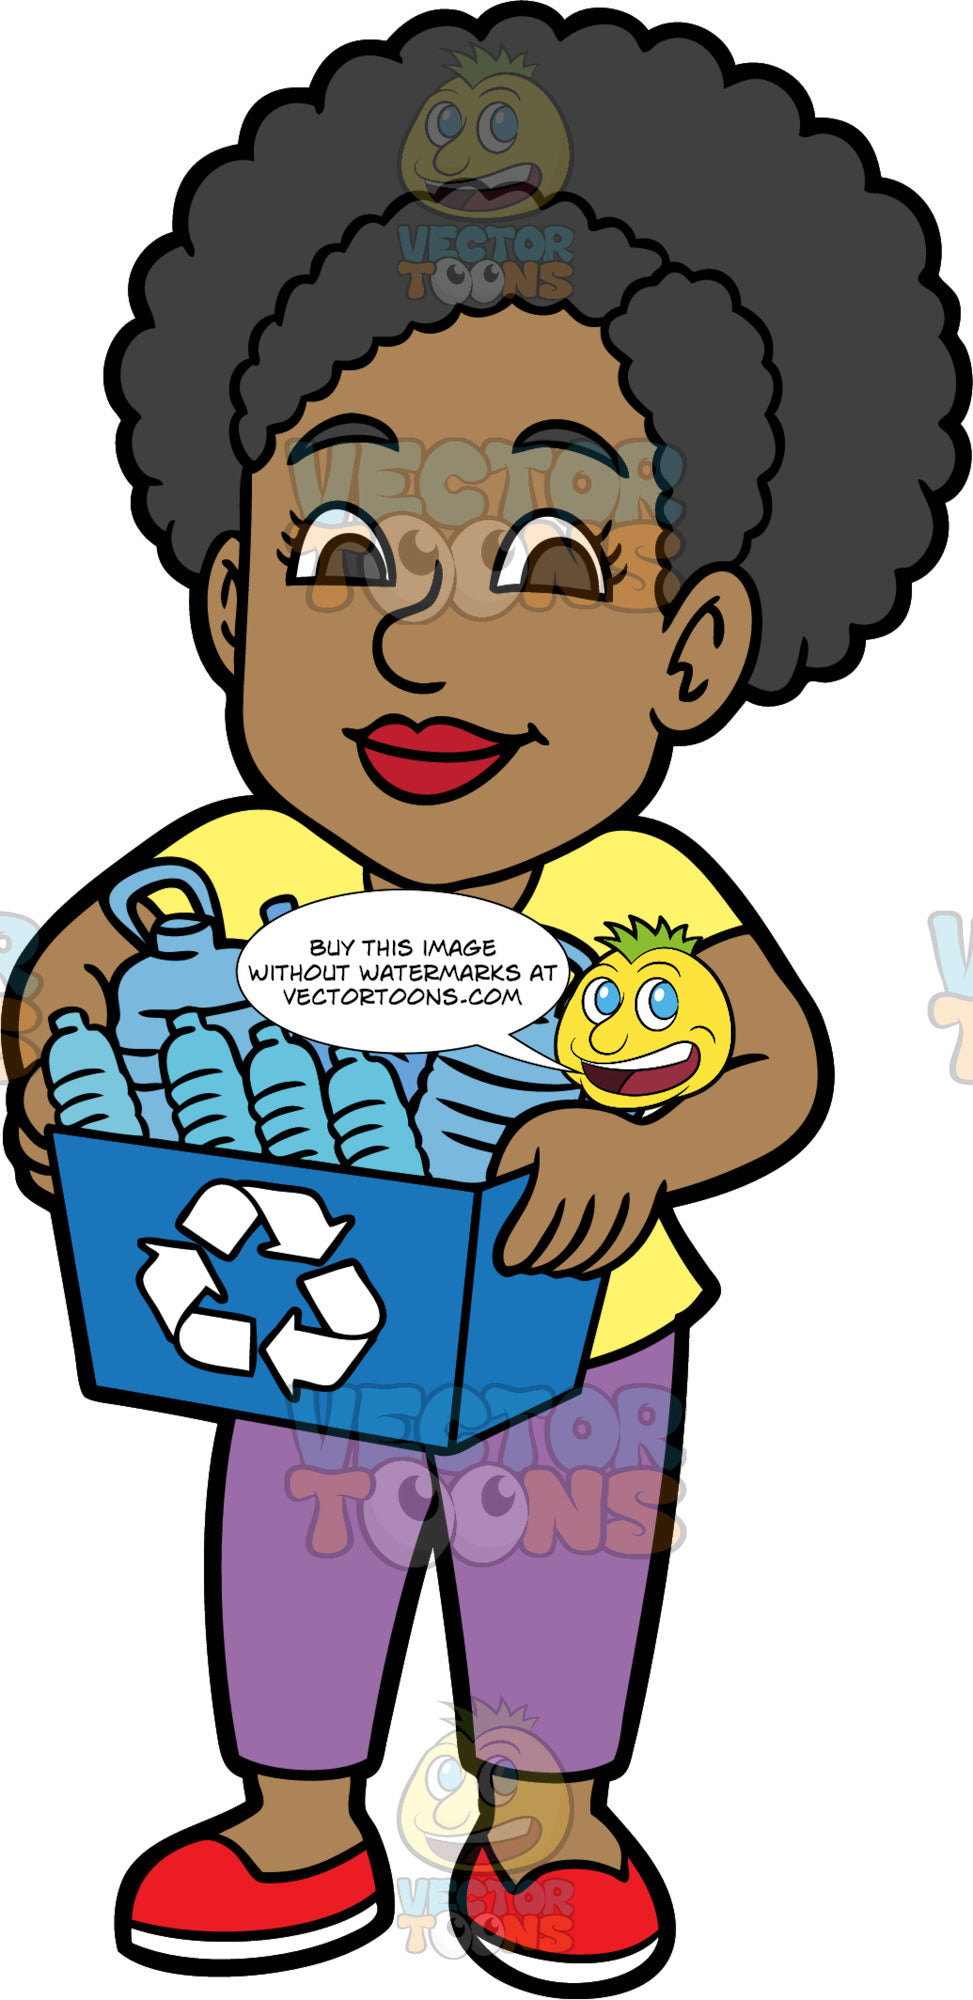 Jackie Holding A Blue Bin Filled With Plastic Containers. A black woman wearing purple pants, a yellow t-shirt, and red shoes, carrying a recycling bin filled with plastic bottles